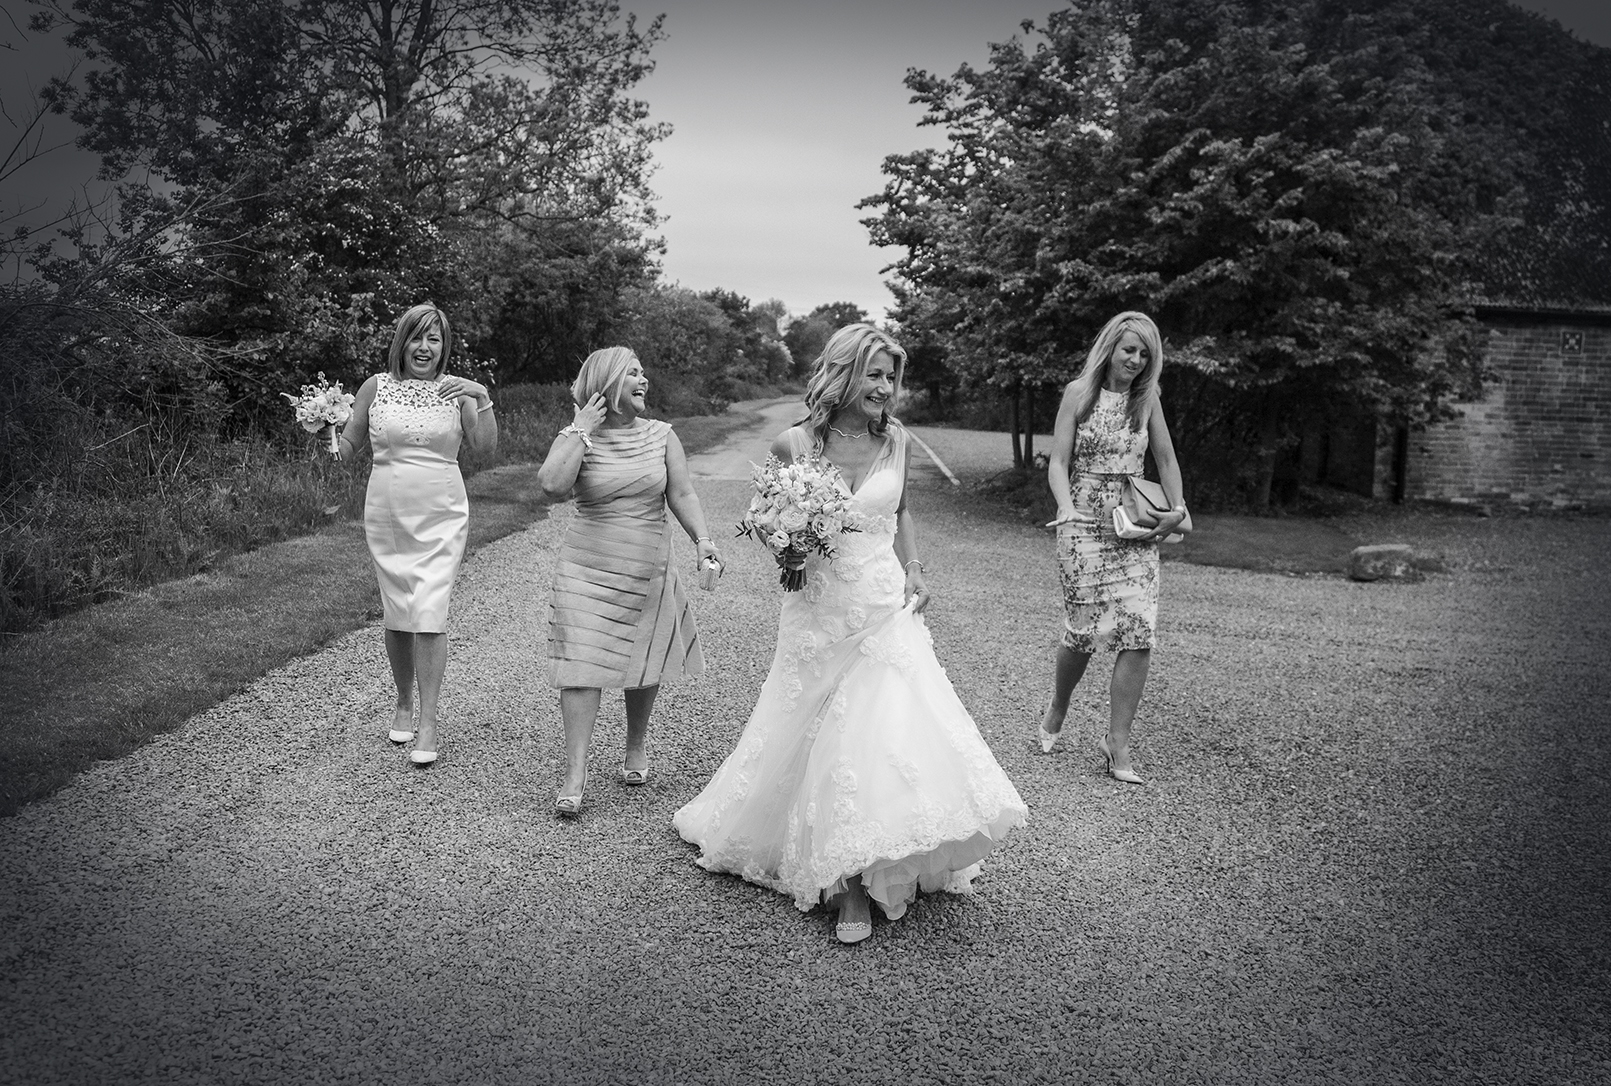 shustoke barns wedding photographer 2.jpg